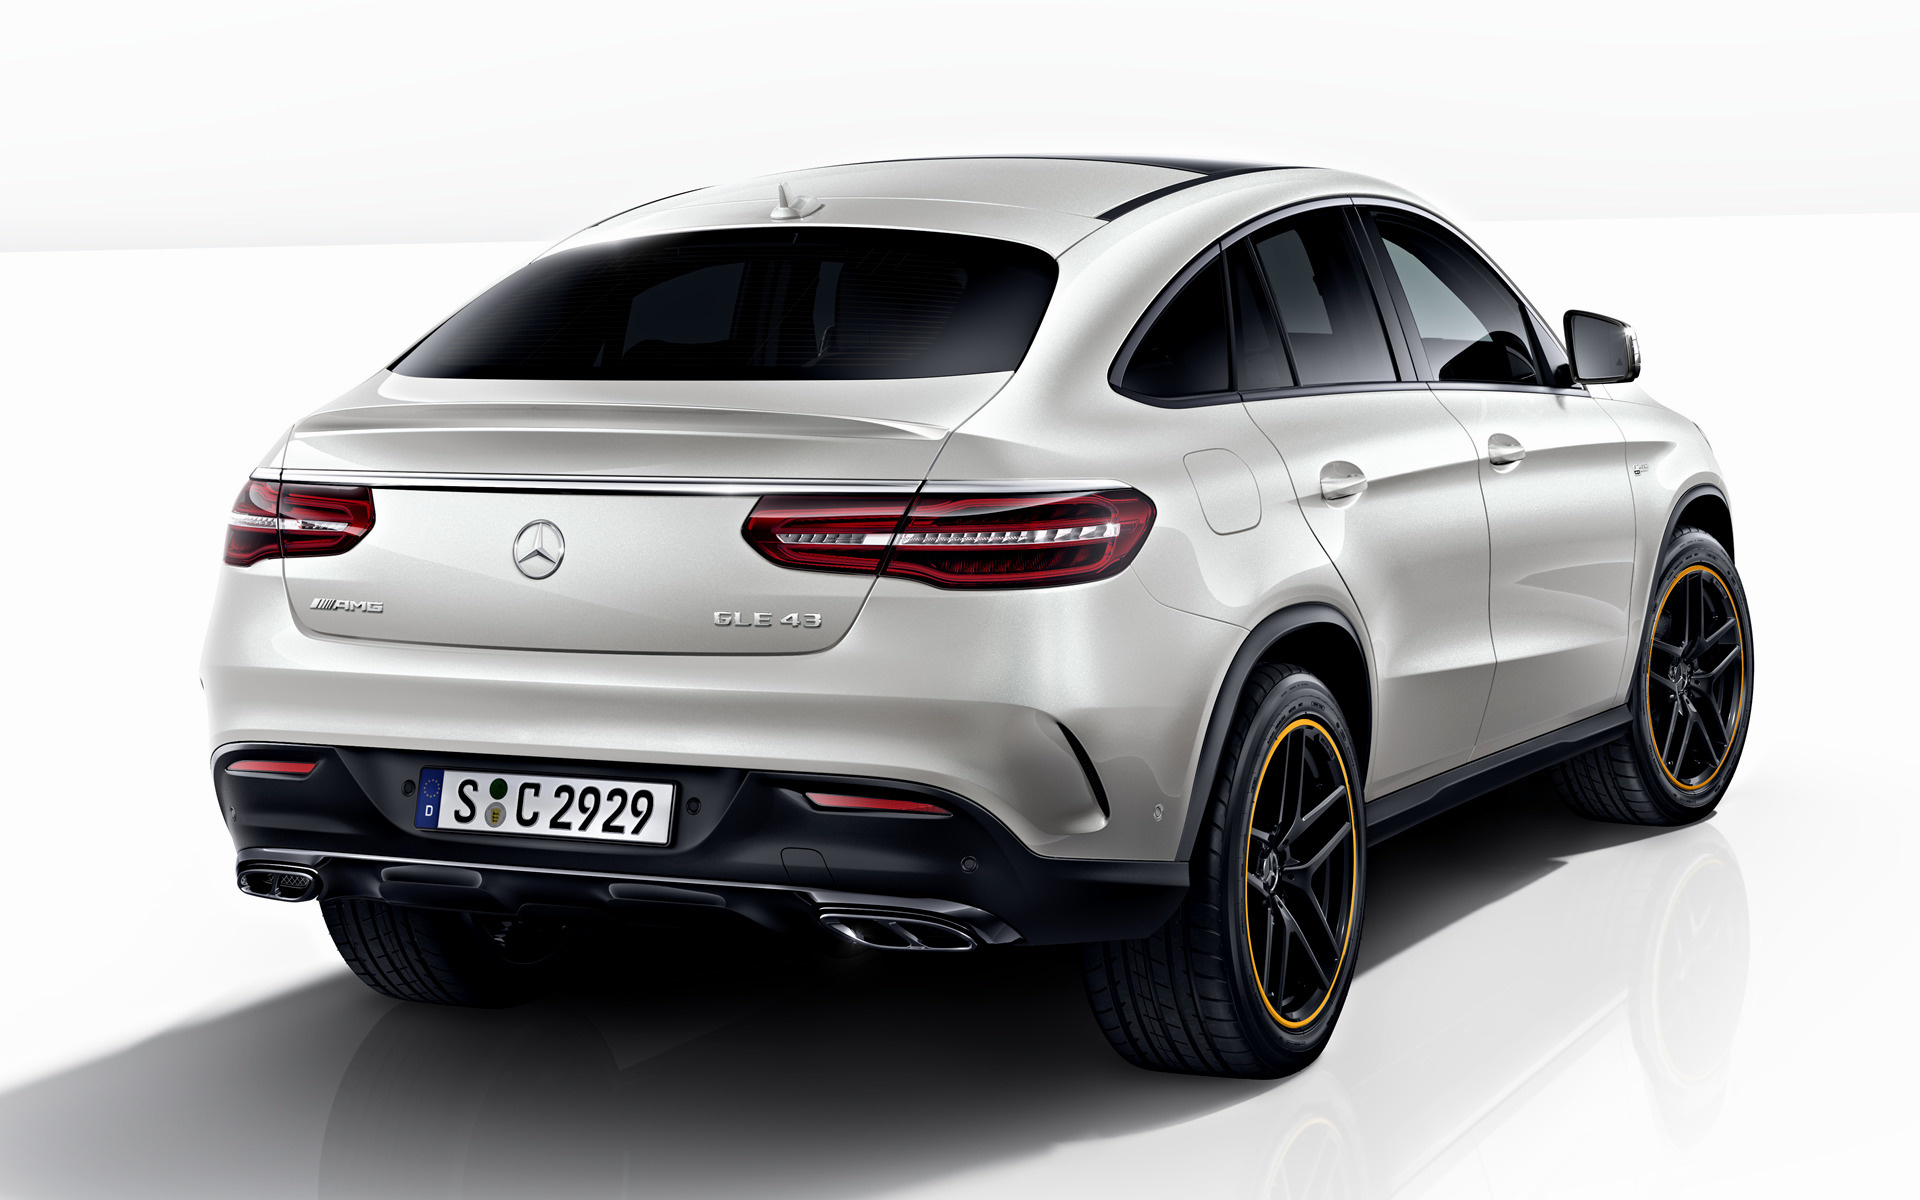 Hd Hybrid Car Wallpaper 2017 Mercedes Amg Gle 43 Coupe Orangeart Edition